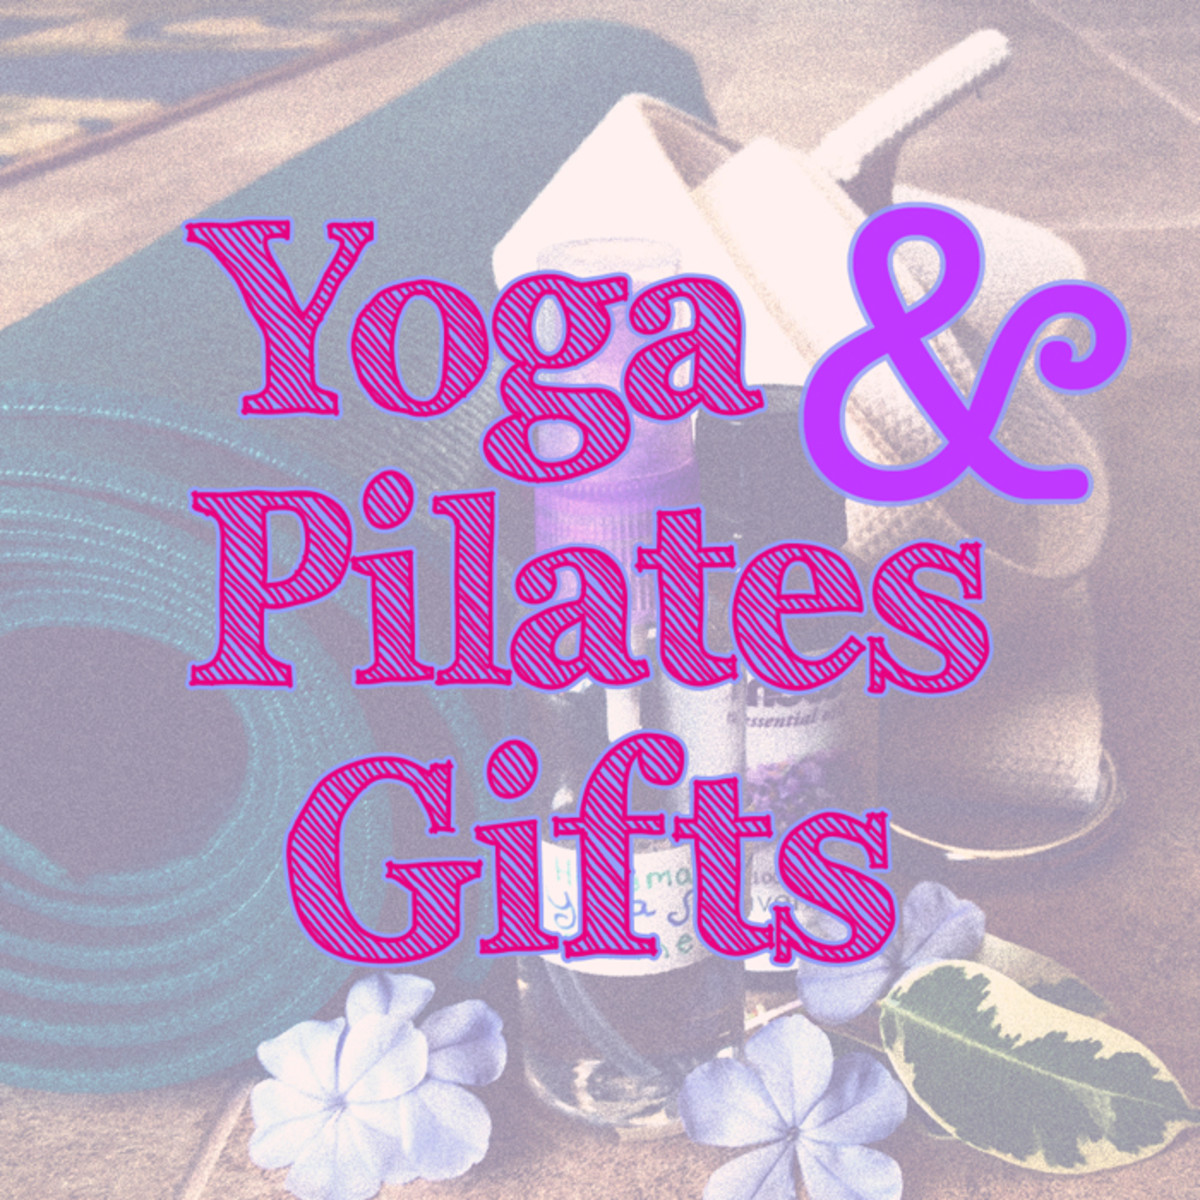 Yoga & Pilates Gifts